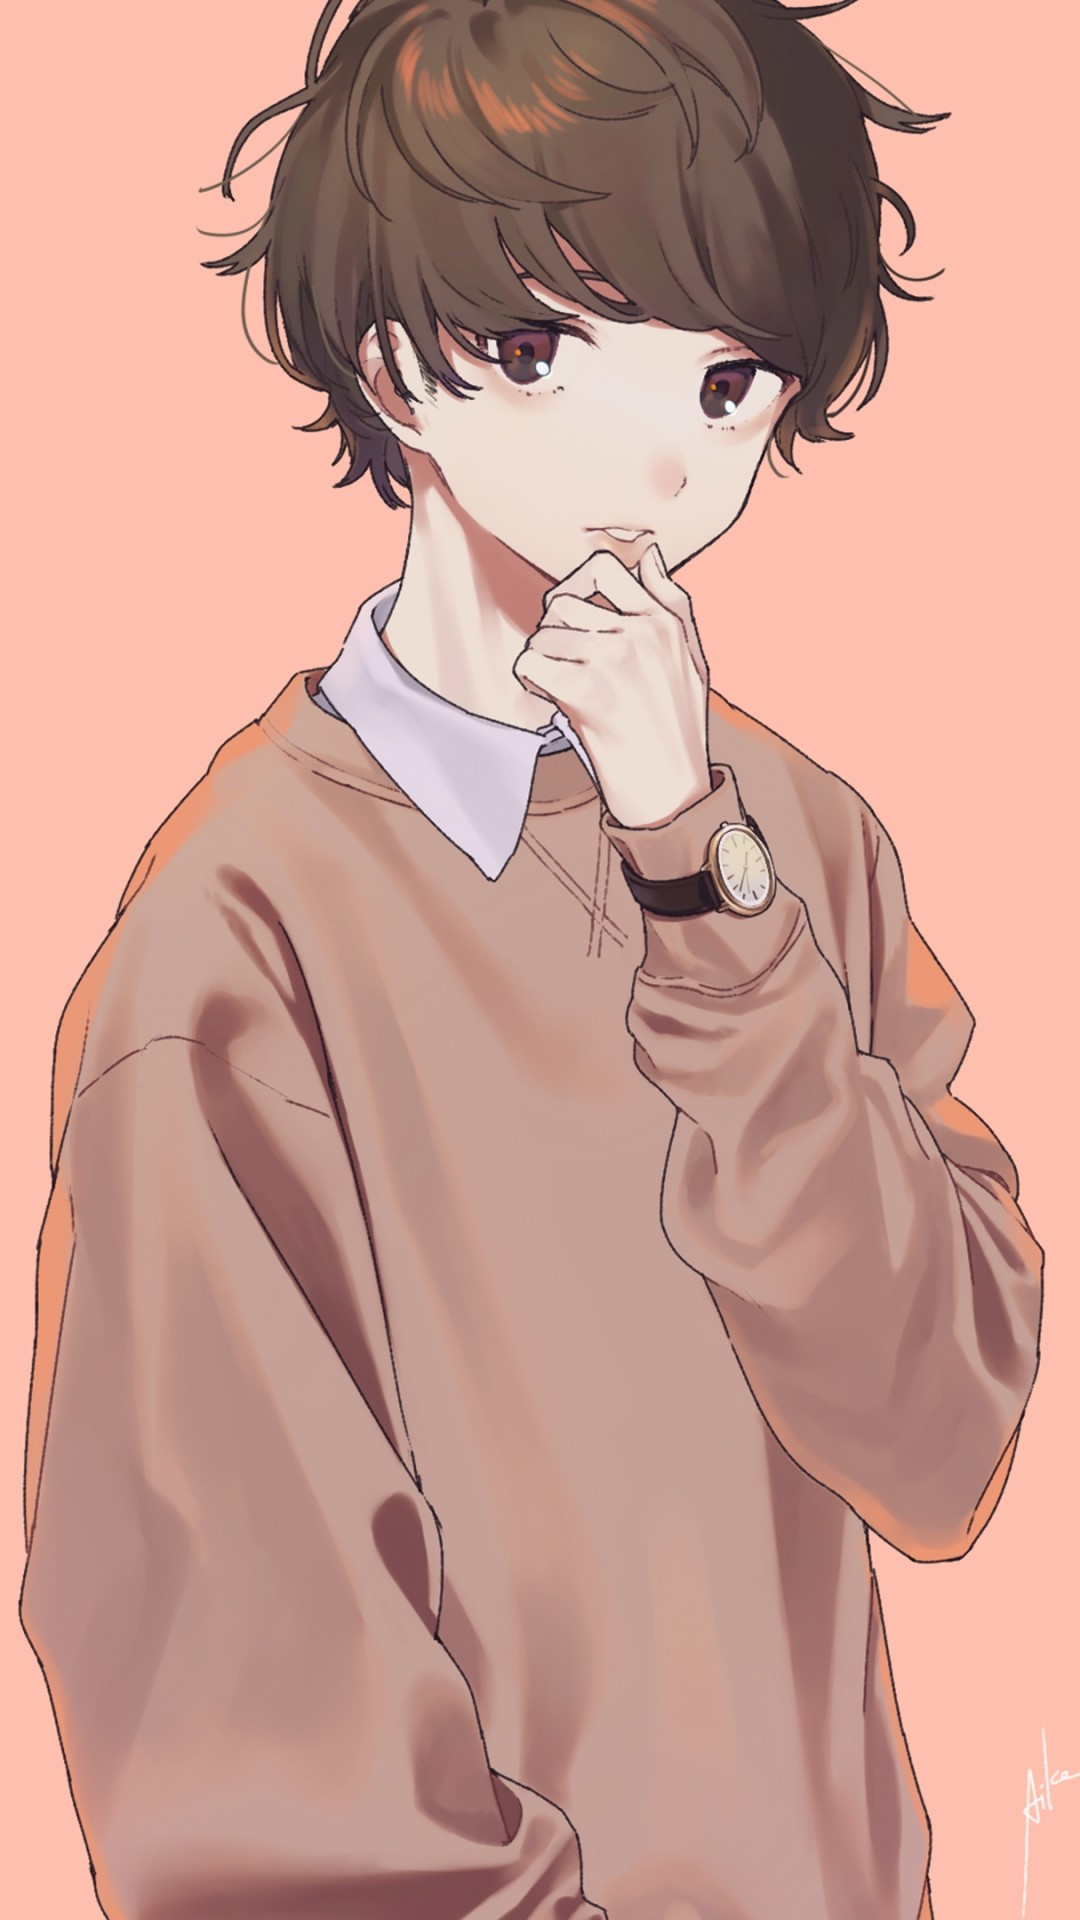 Cute Anime Boy Wallpaper Iphone